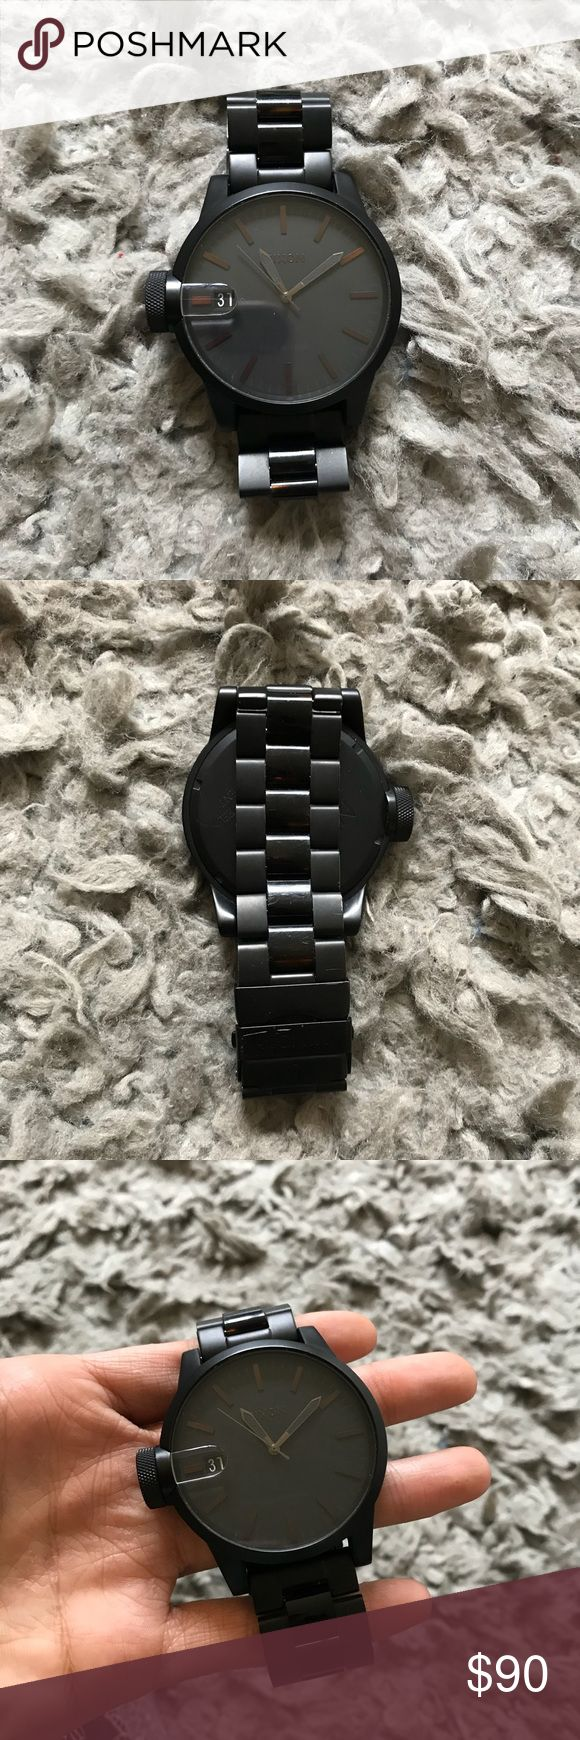 Men's Nixon tortoise watch High quality men's watch Nixon Accessories Watches